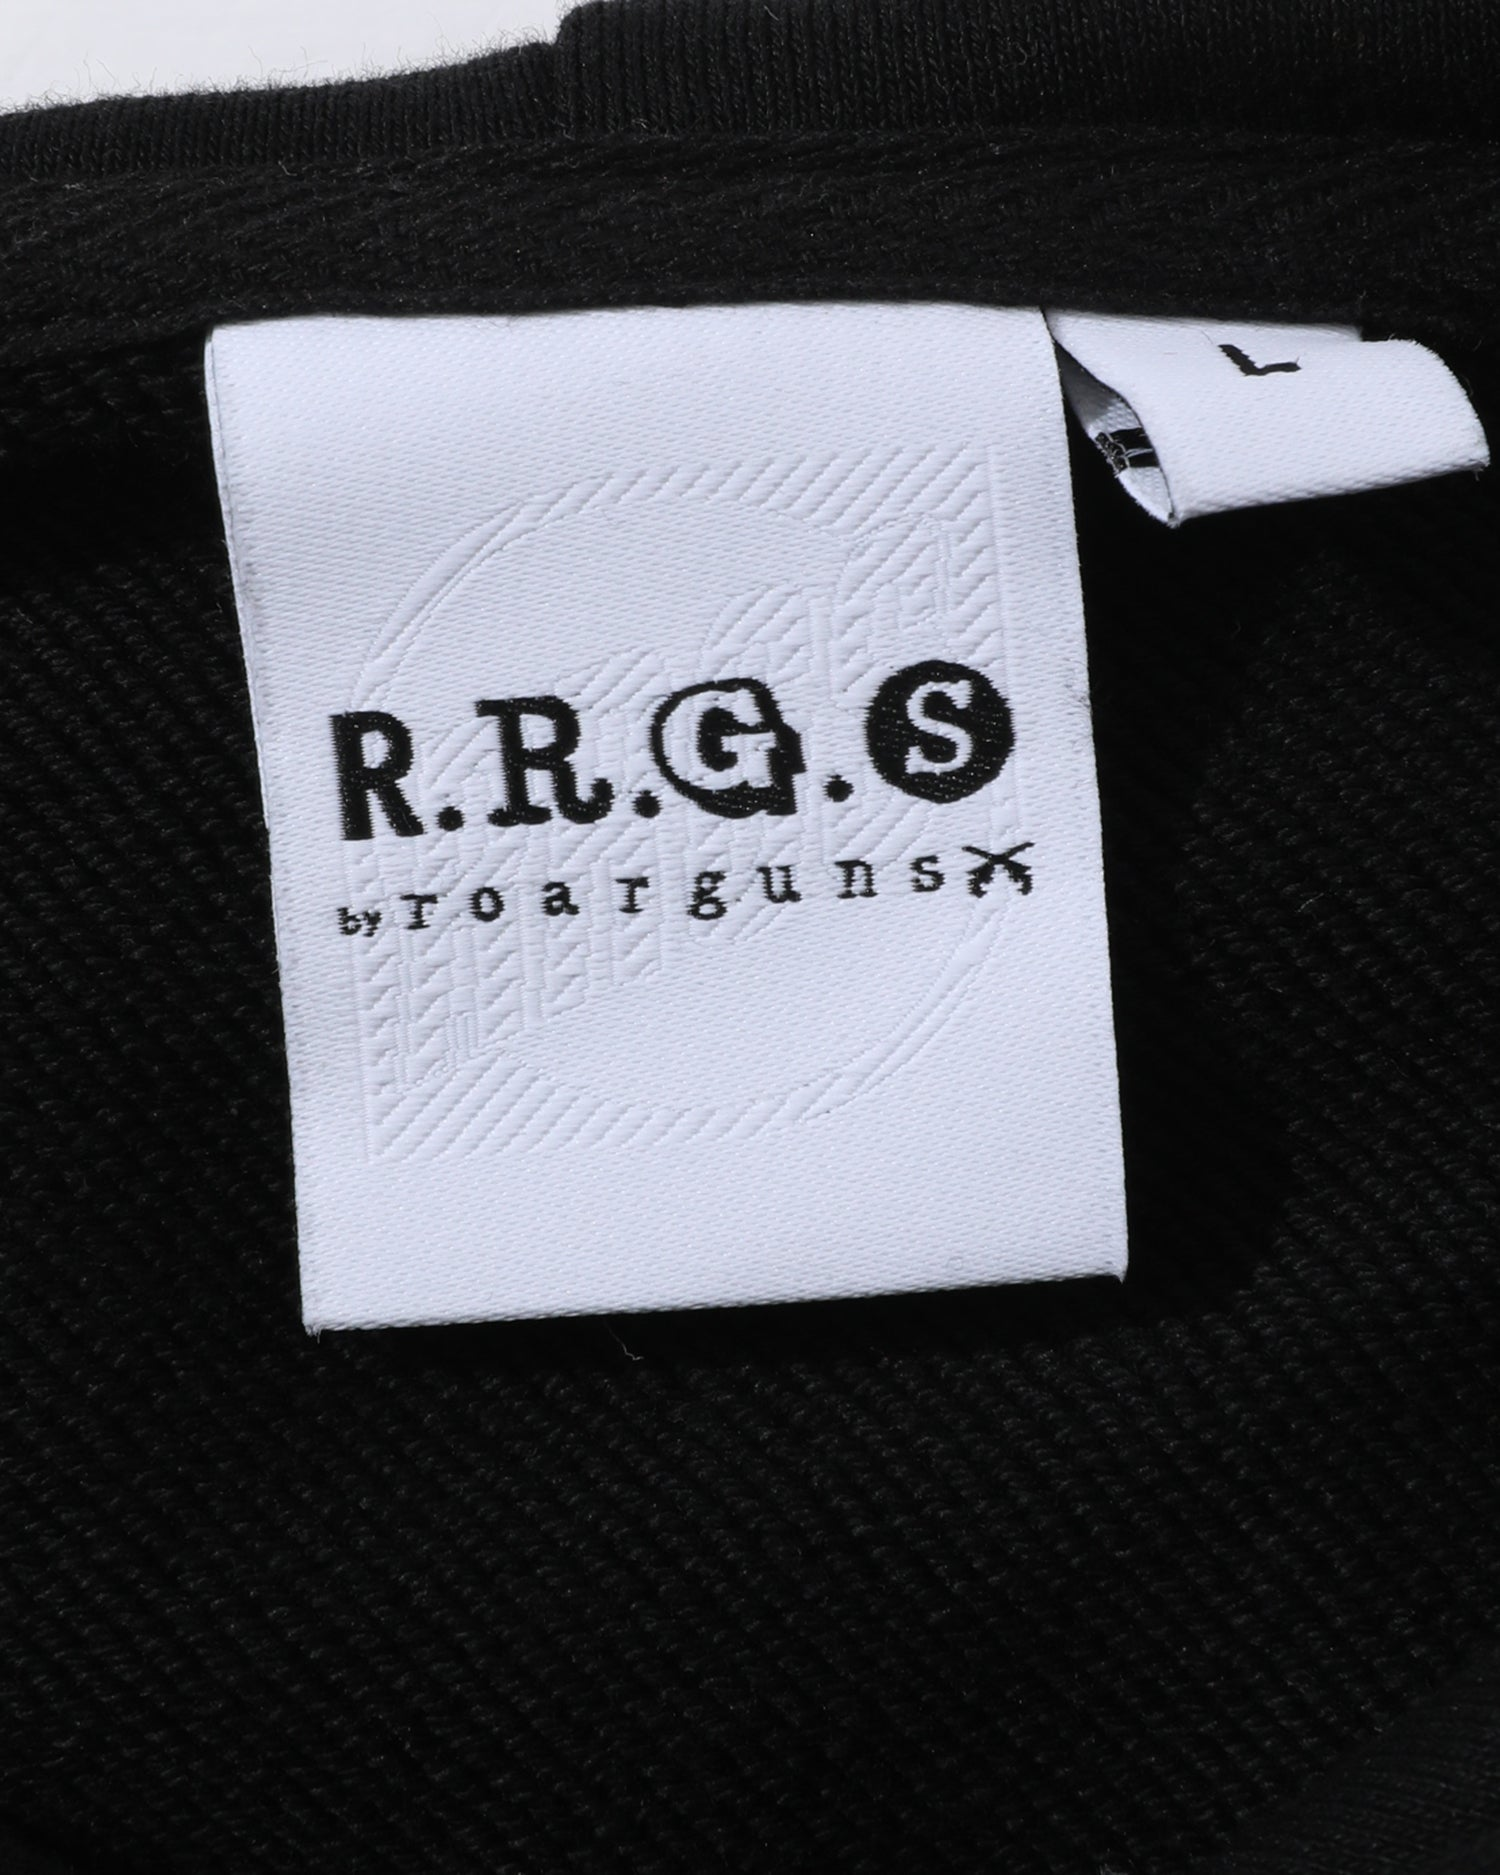 Load image into Gallery viewer, R.R.G.S LOGO PRINT HOODIE